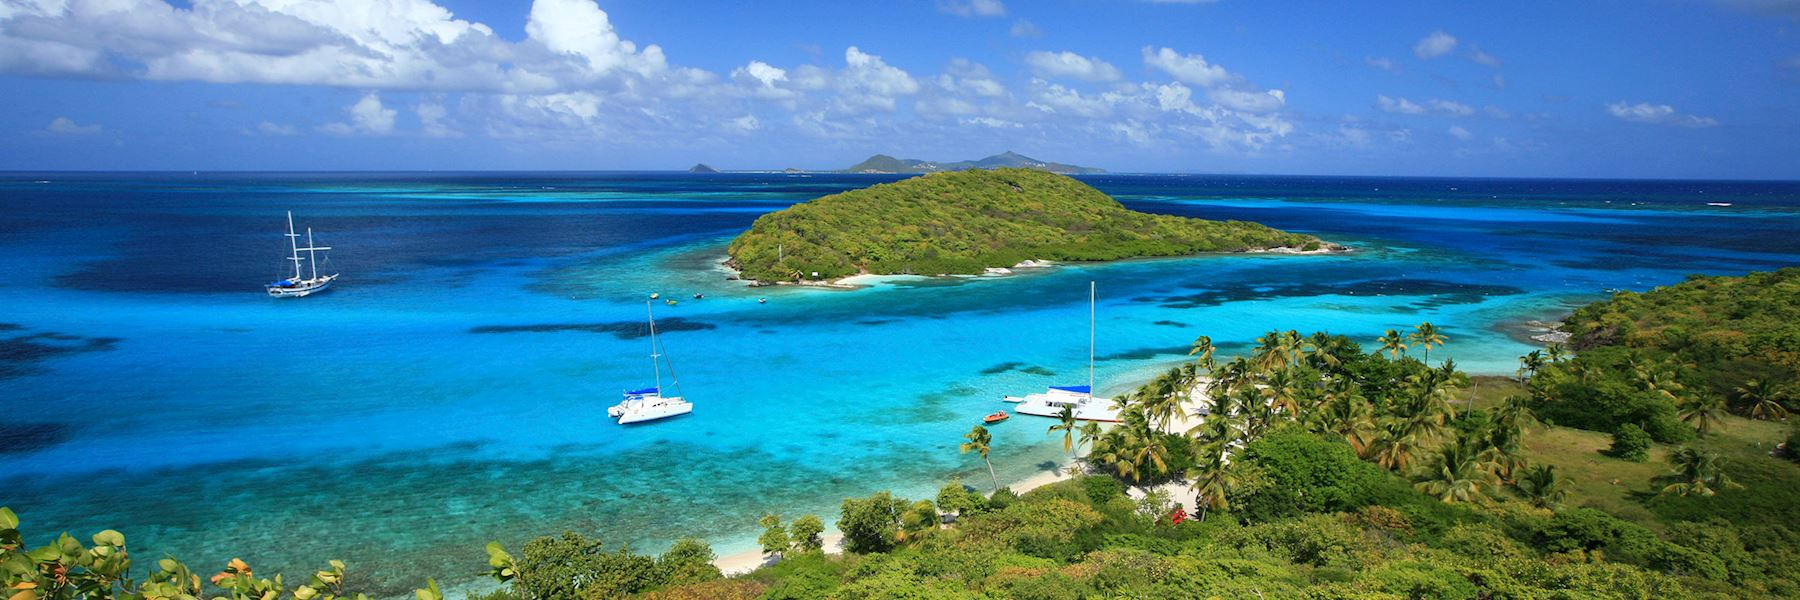 St Vincent and the Grenadines holidays  2019 & 2020